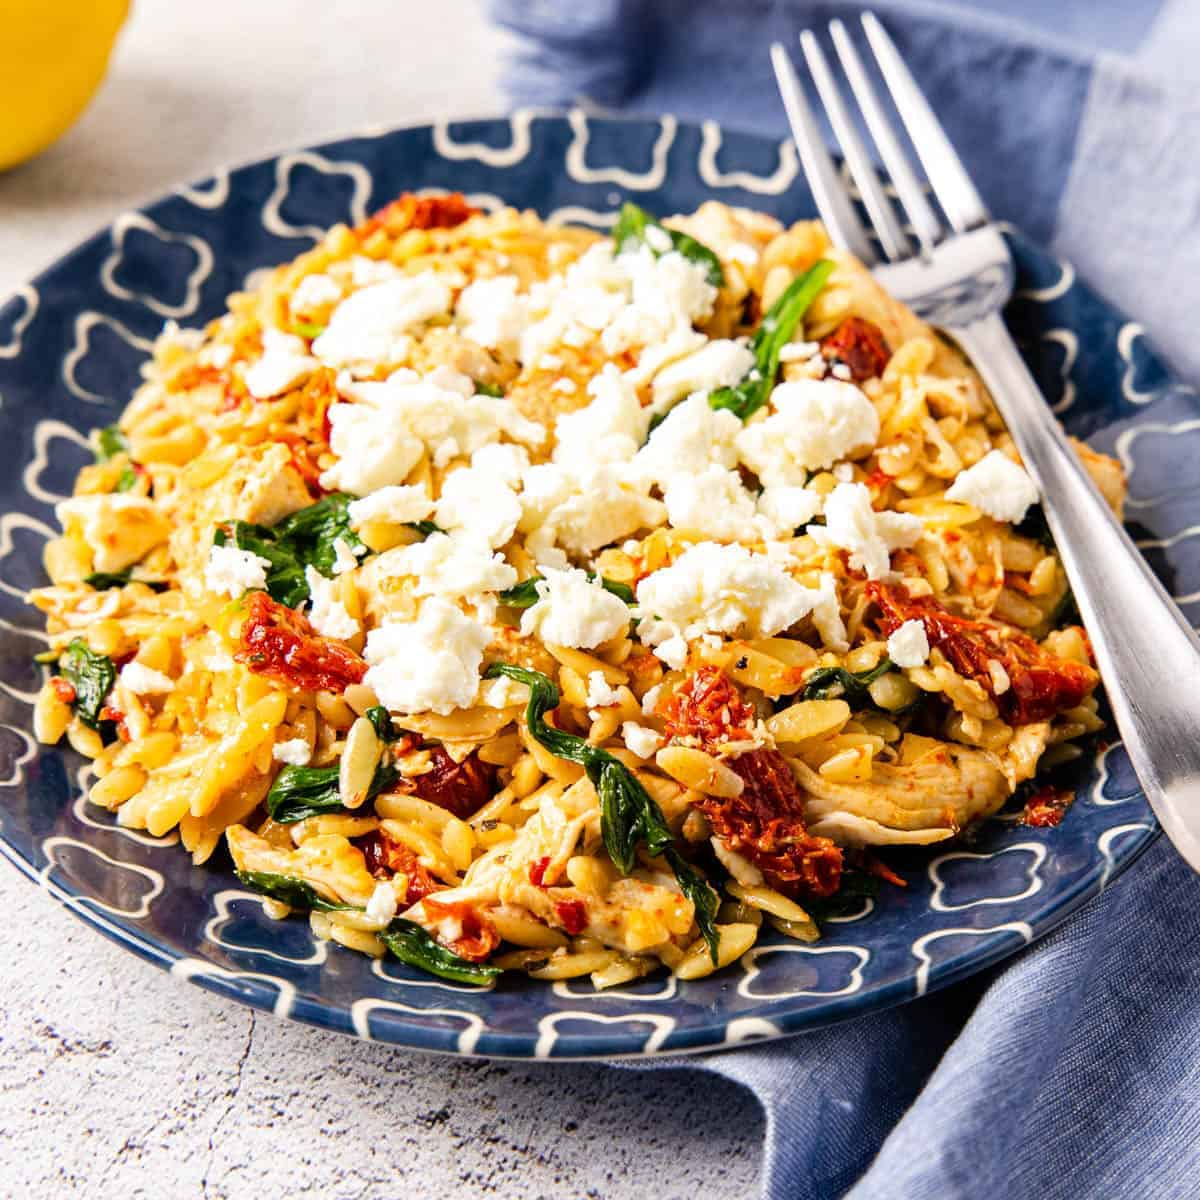 Mediterranean chicken orzo topped with crumbled feta cheese.